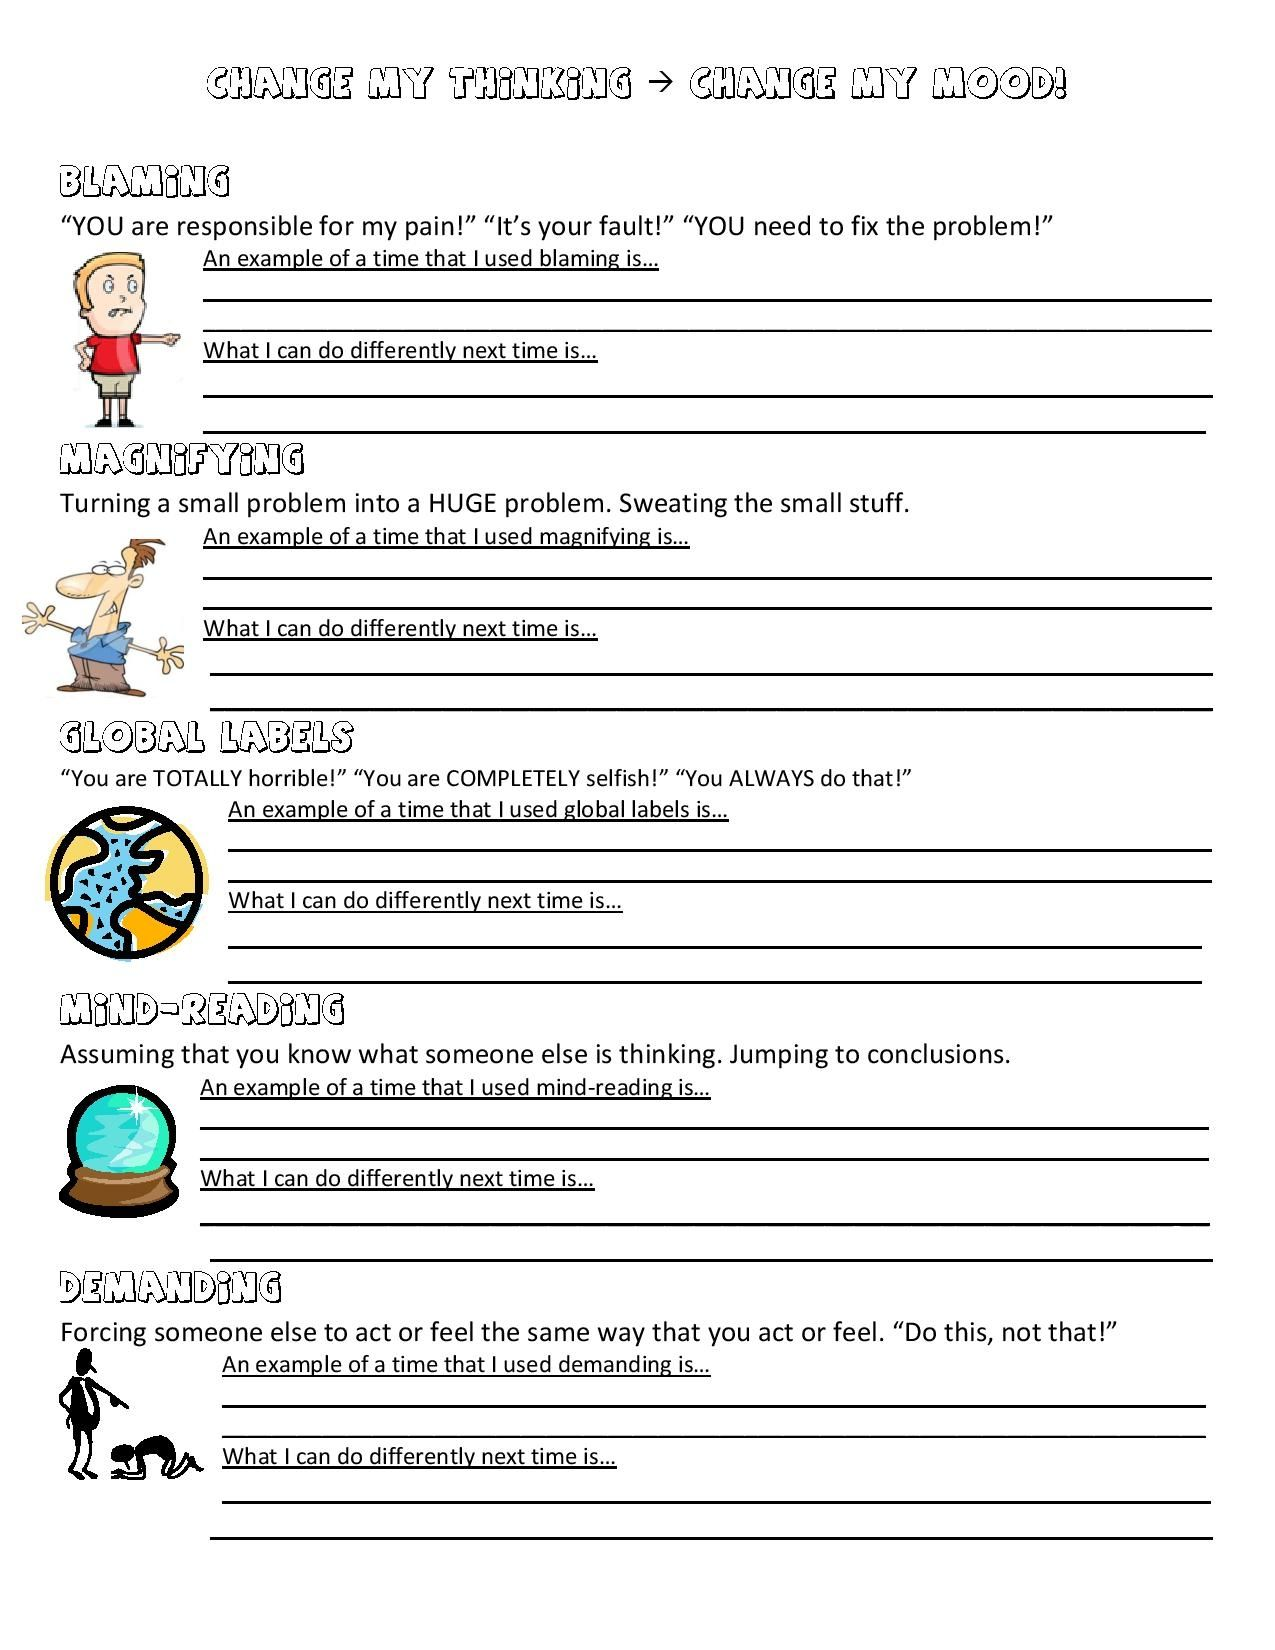 Worksheets Coping With Anger Worksheets 1000 images about anger management on pinterest